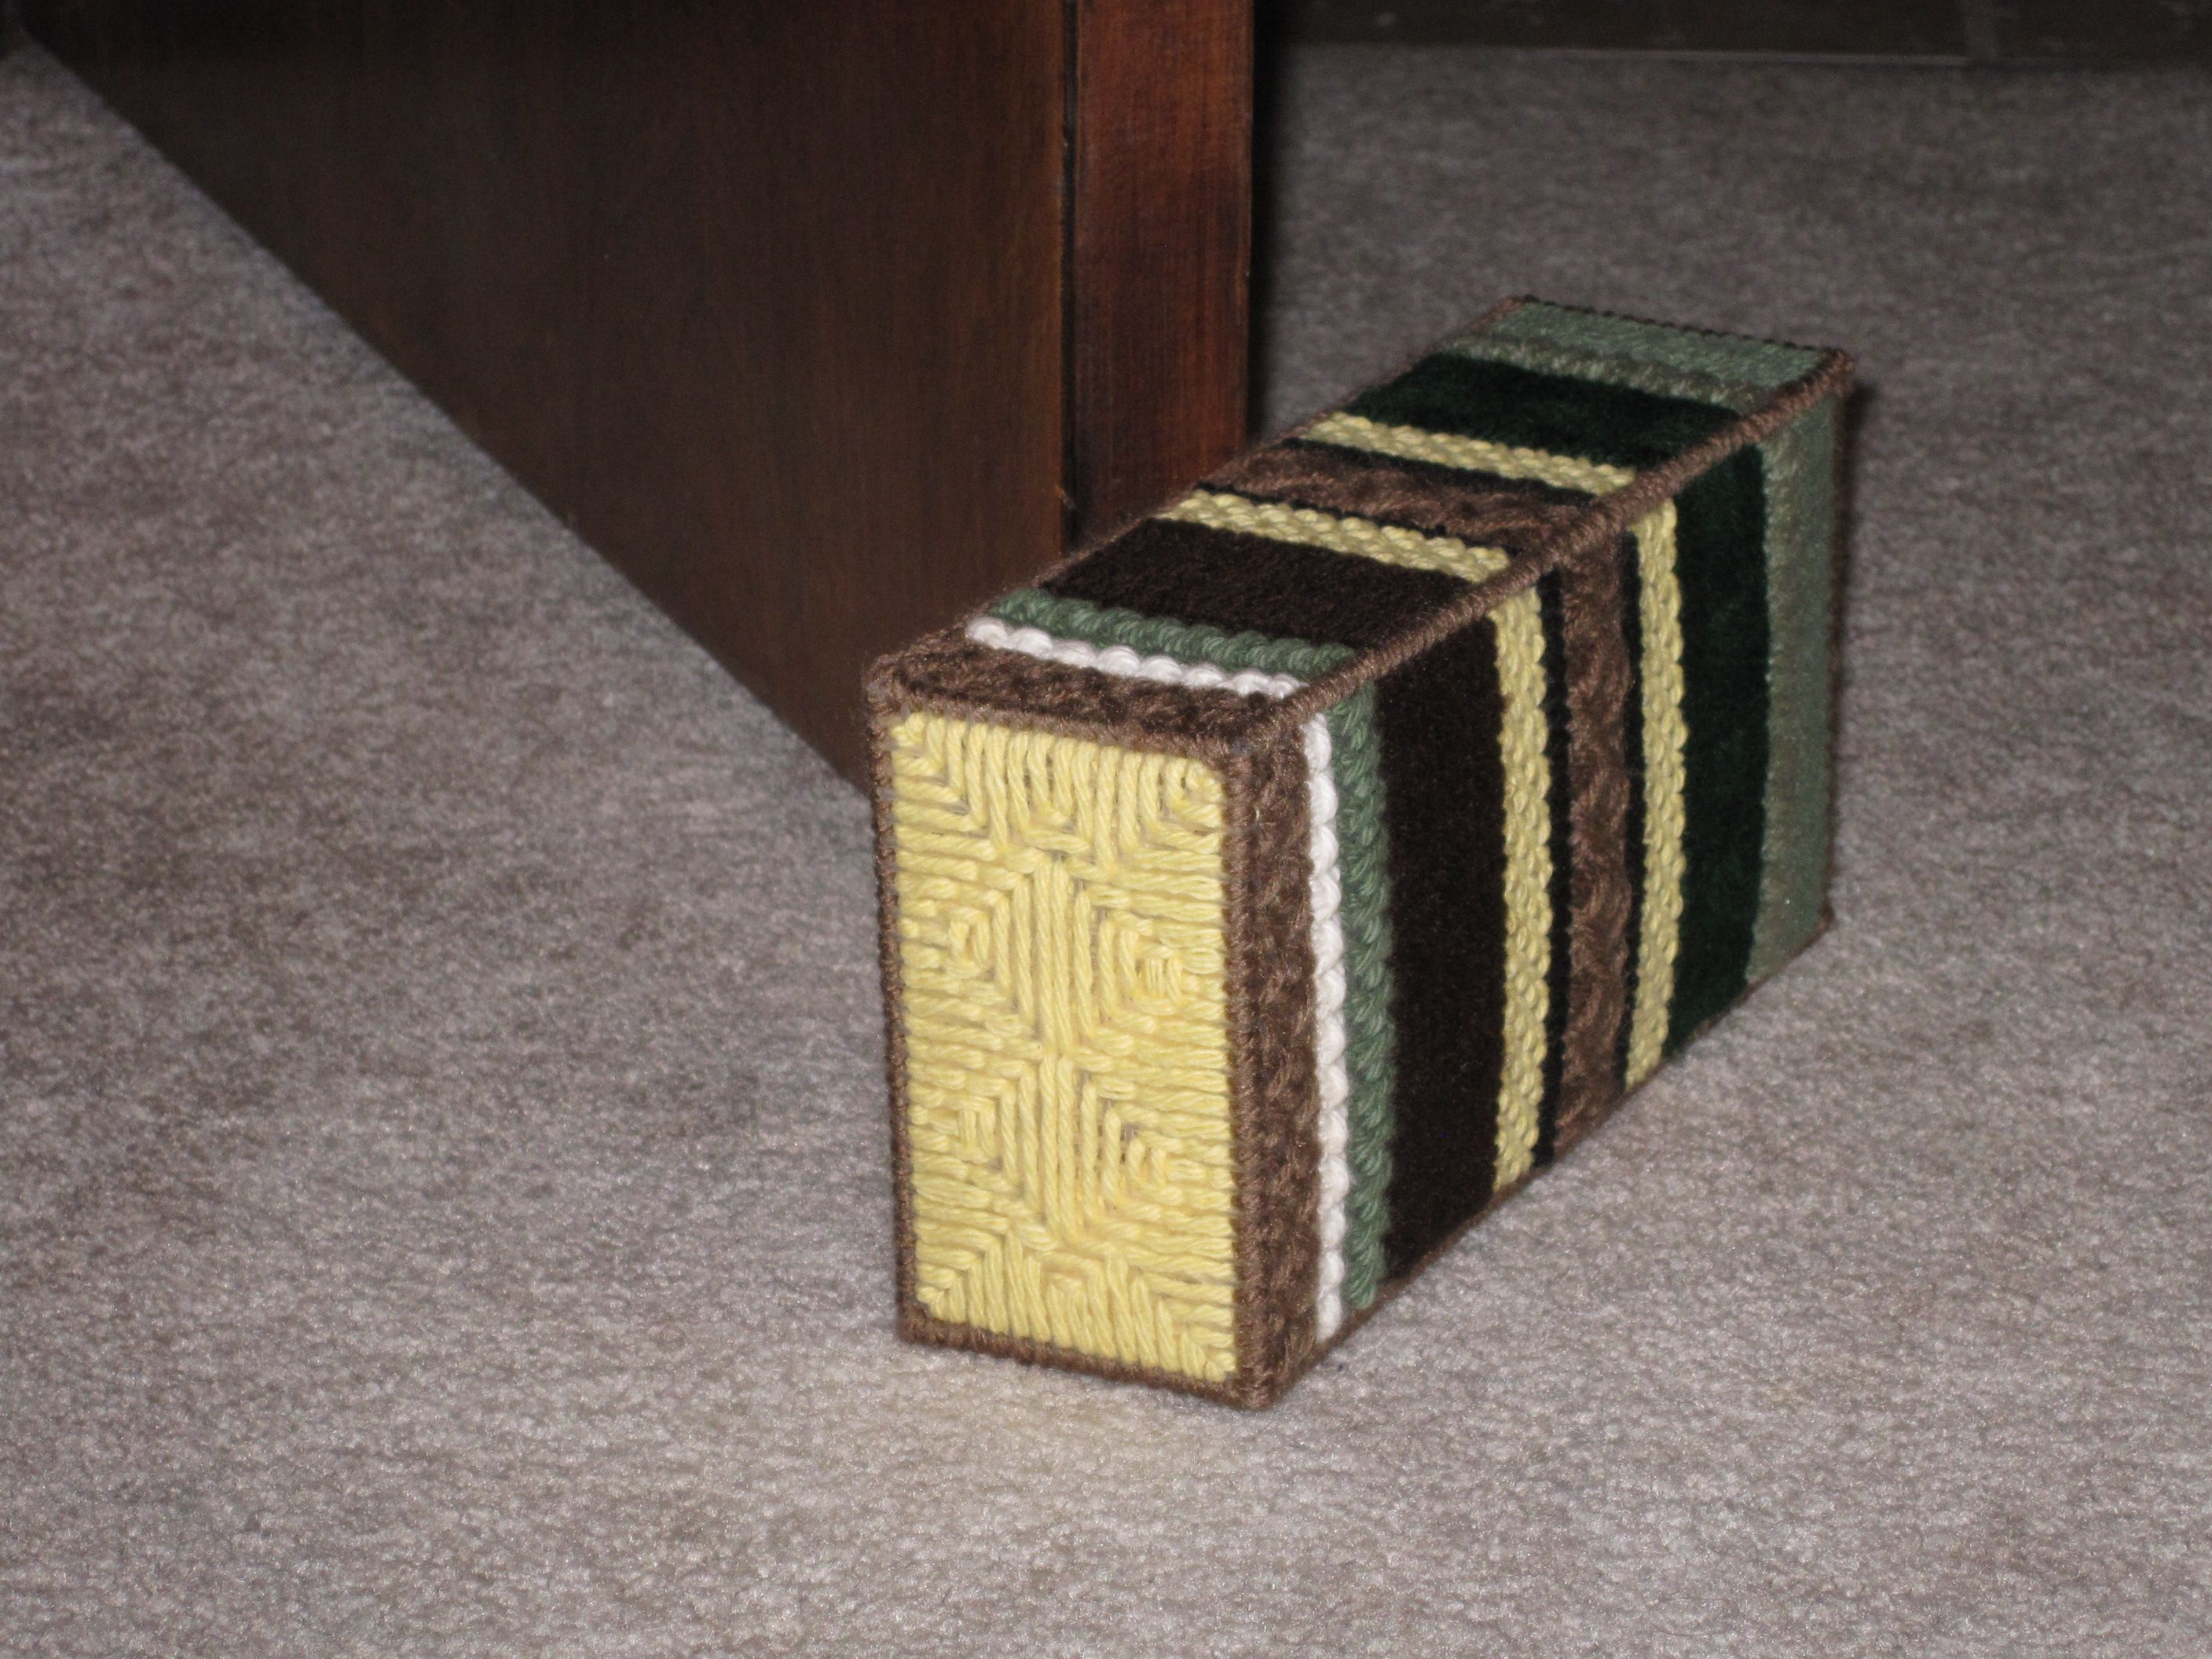 Door Stop I Made By Sewing Plastic Canvas And Inserting